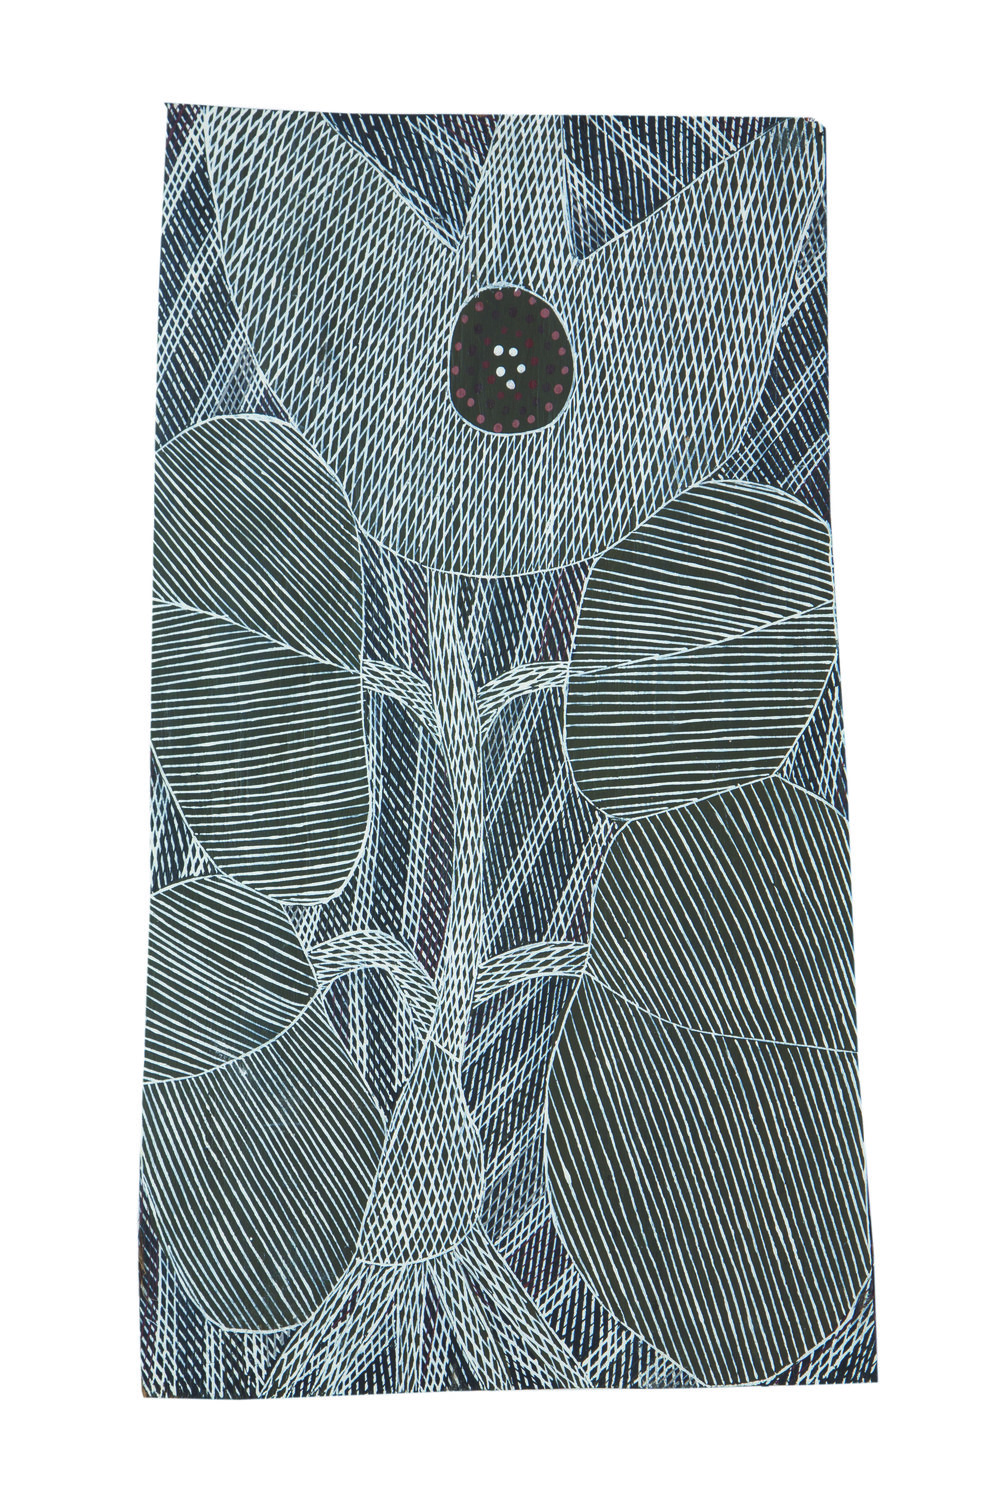 Malaluba Gumana  Dhatam Lily  Natural earth pigments on bark 23 x 17 cm Buku Larrnggay Mulka #4275A   EMAIL INQUIRY